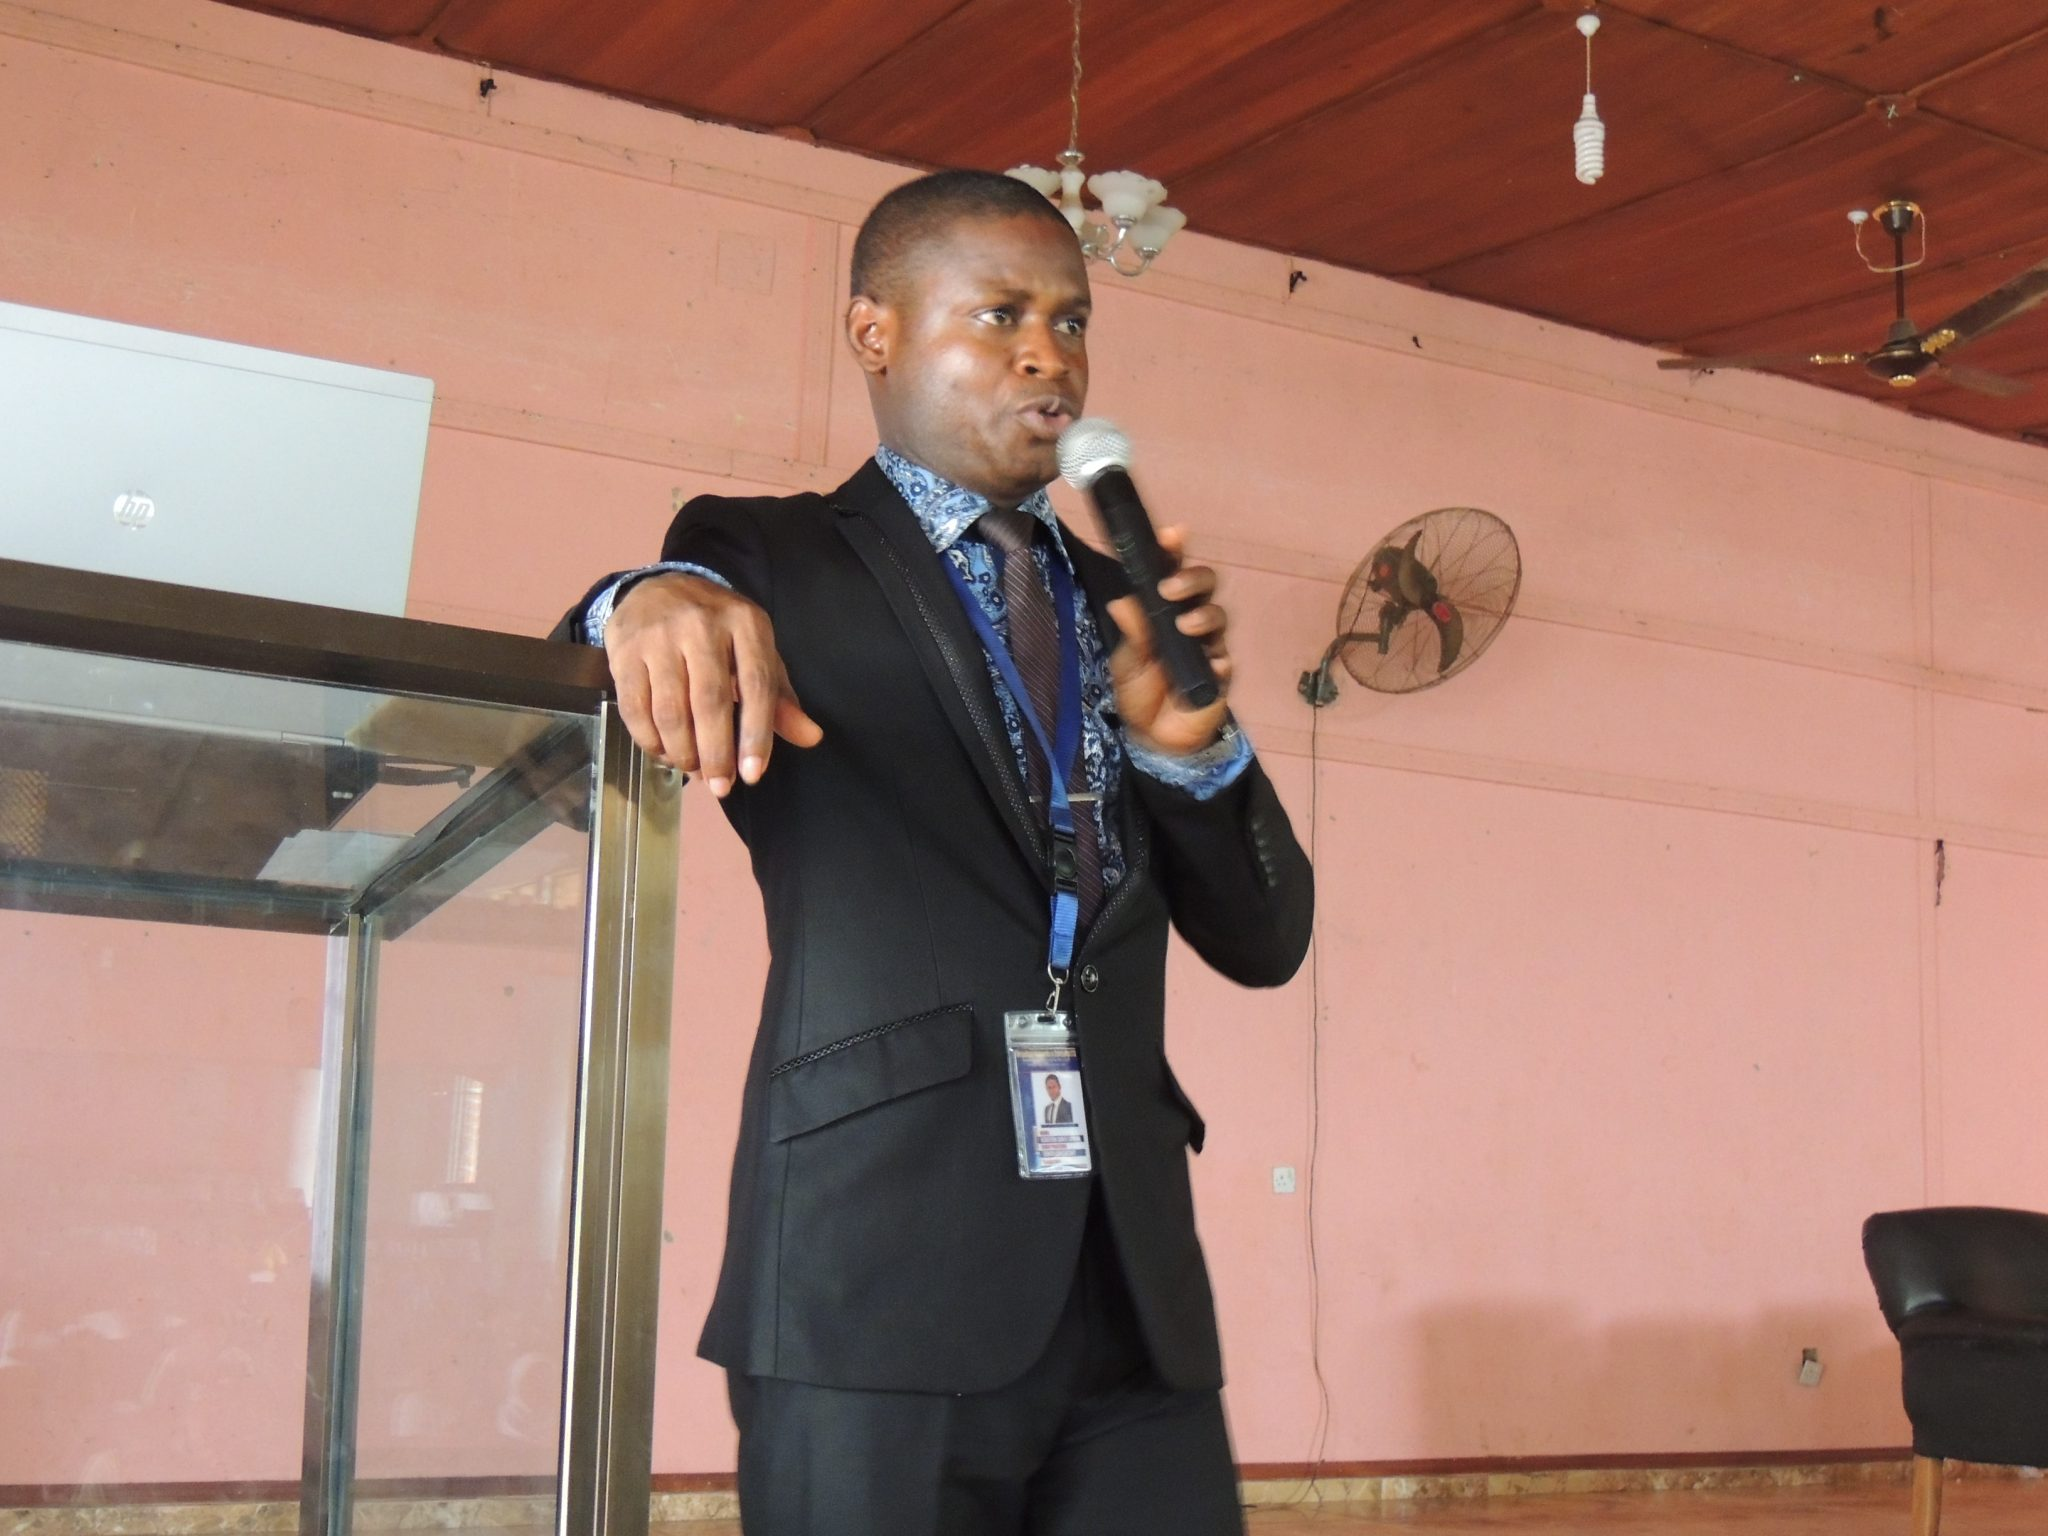 mr daniel ogbeifun of megarich networks and consults ltd